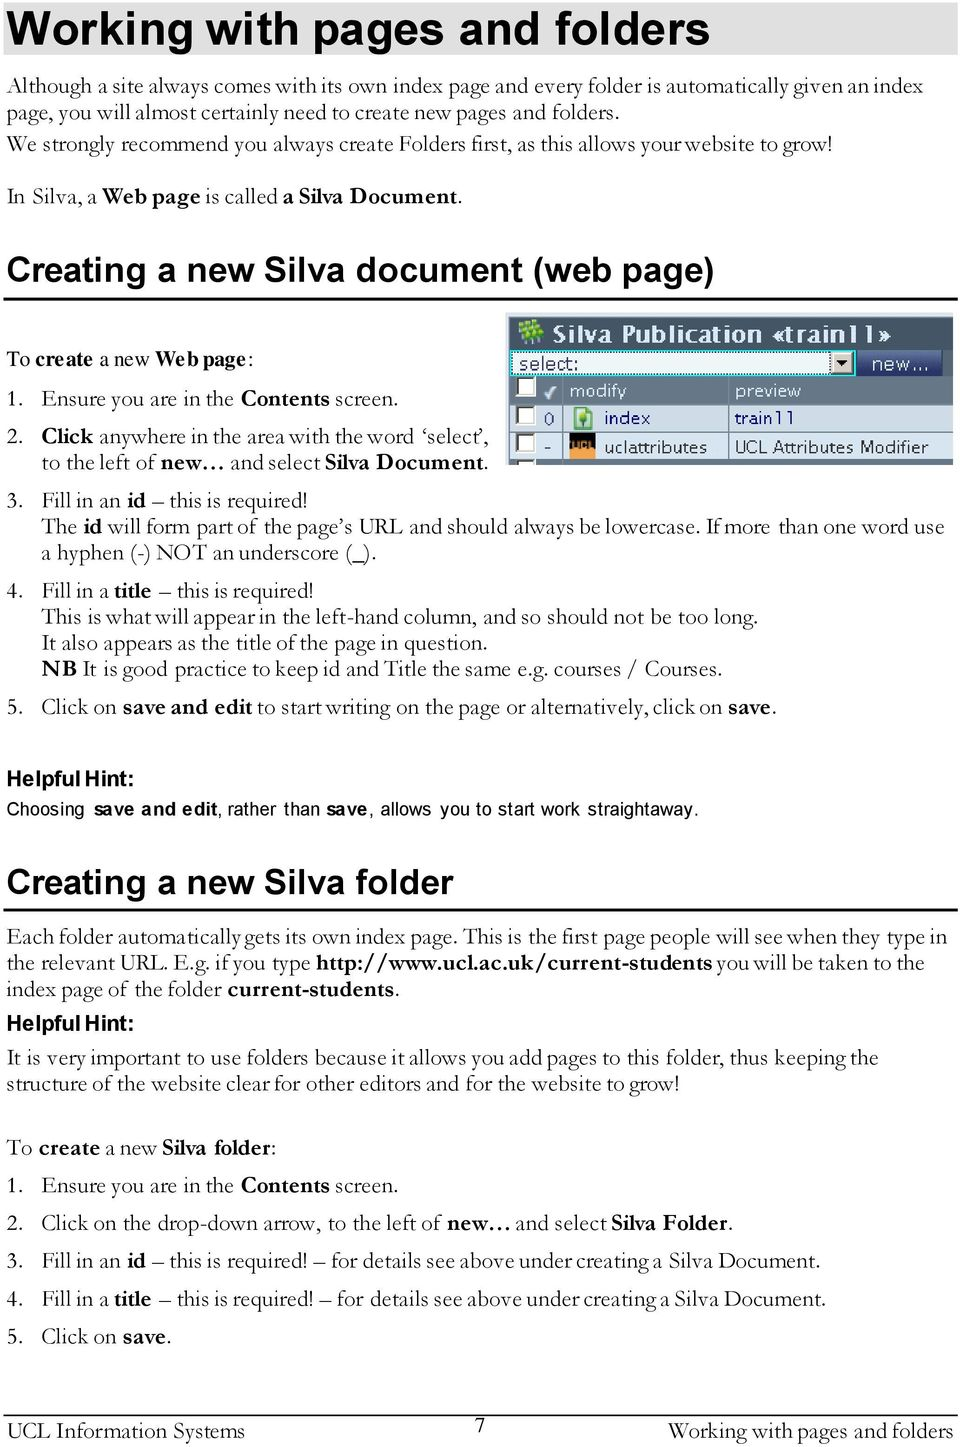 Creating a new Silva document (web page) To create a new Web page: 2. Click anywhere in the area with the word select, to the left of new and select Silva Document. 3. Fill in an id this is required!